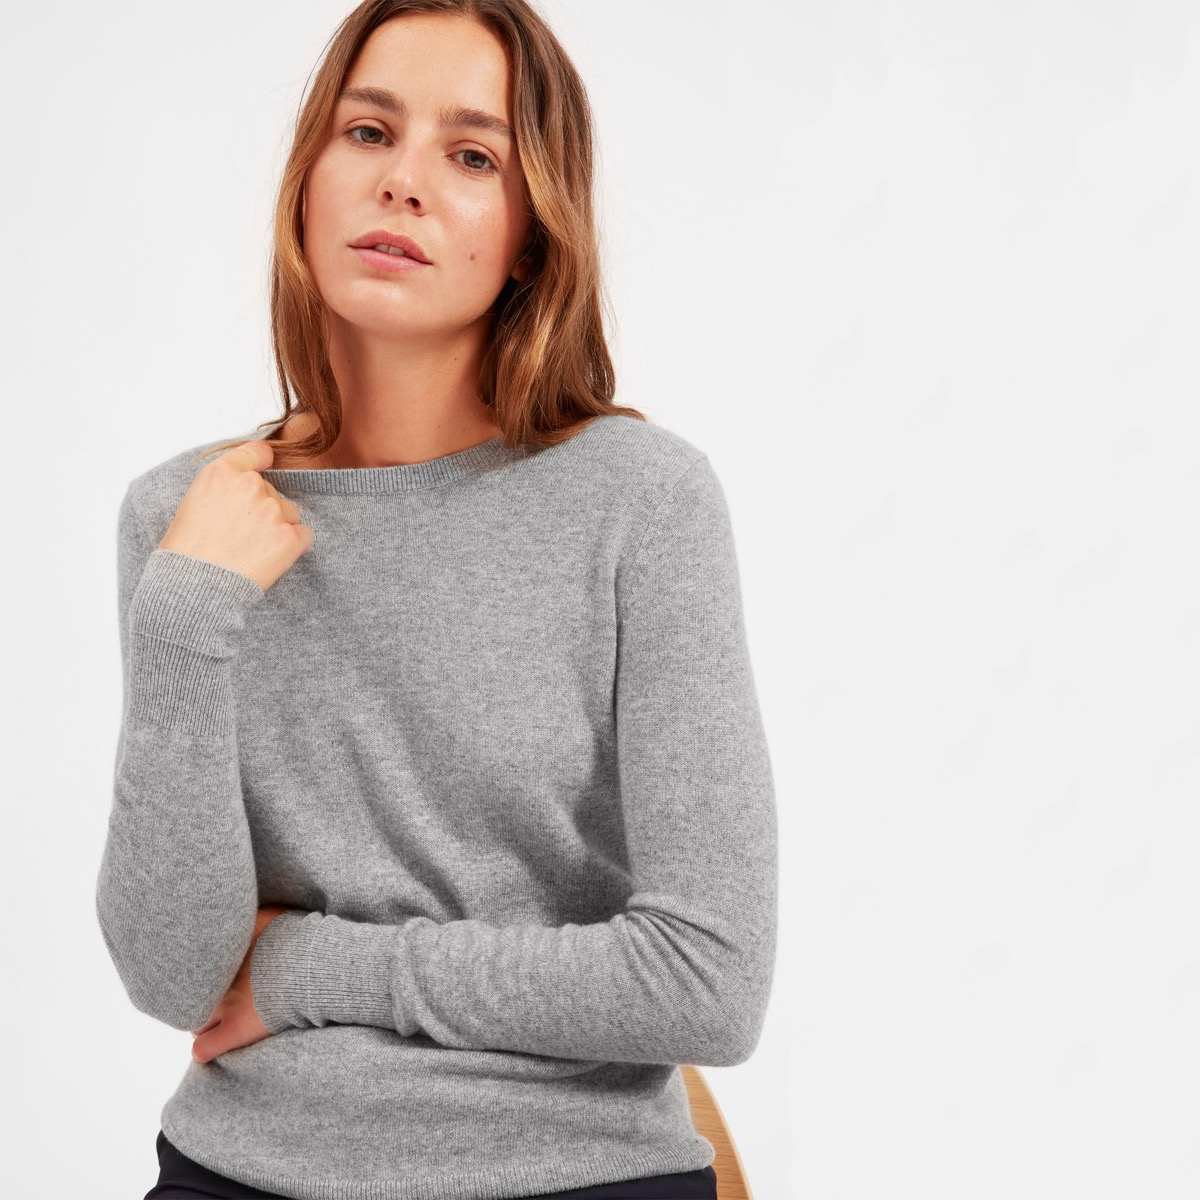 white woman in gray sweater